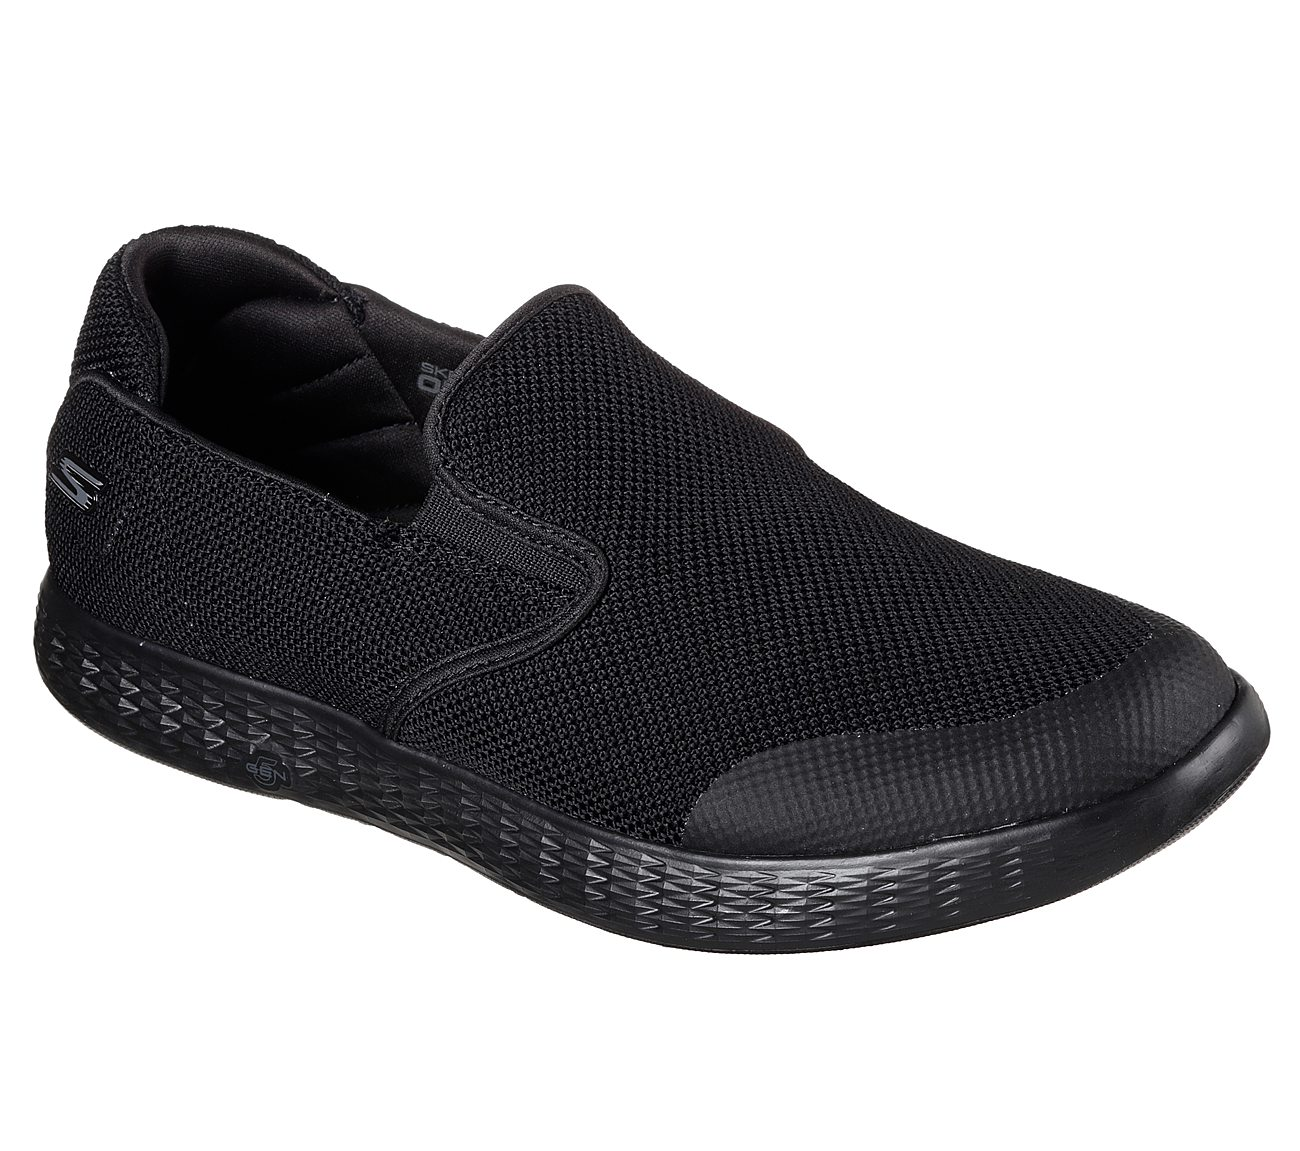 Buy SKECHERS Skechers On the GO Glide